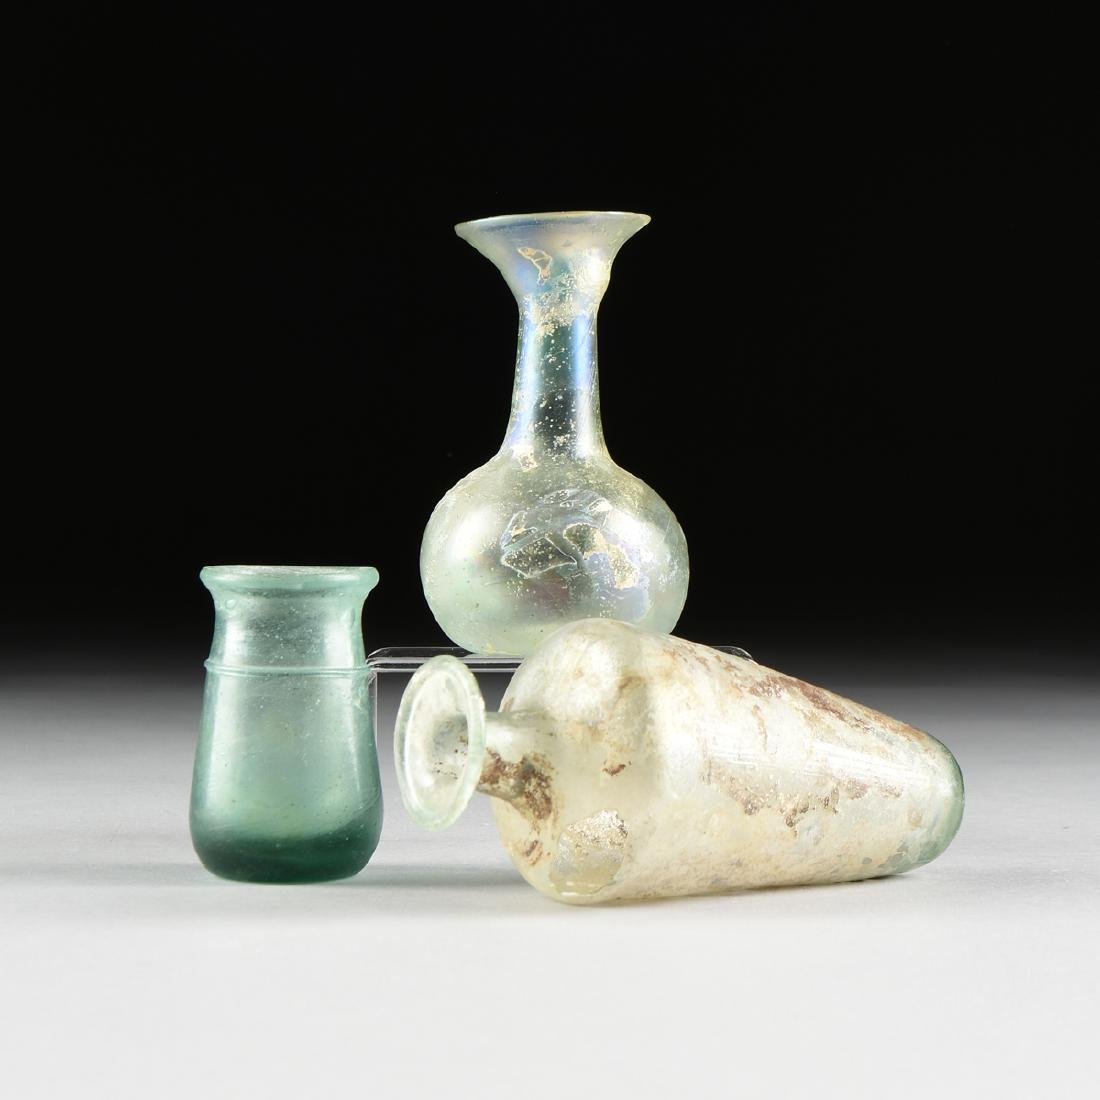 A GROUP OF THREE ANCIENT ROMAN GLASS UNGUENTARIUM, - 2